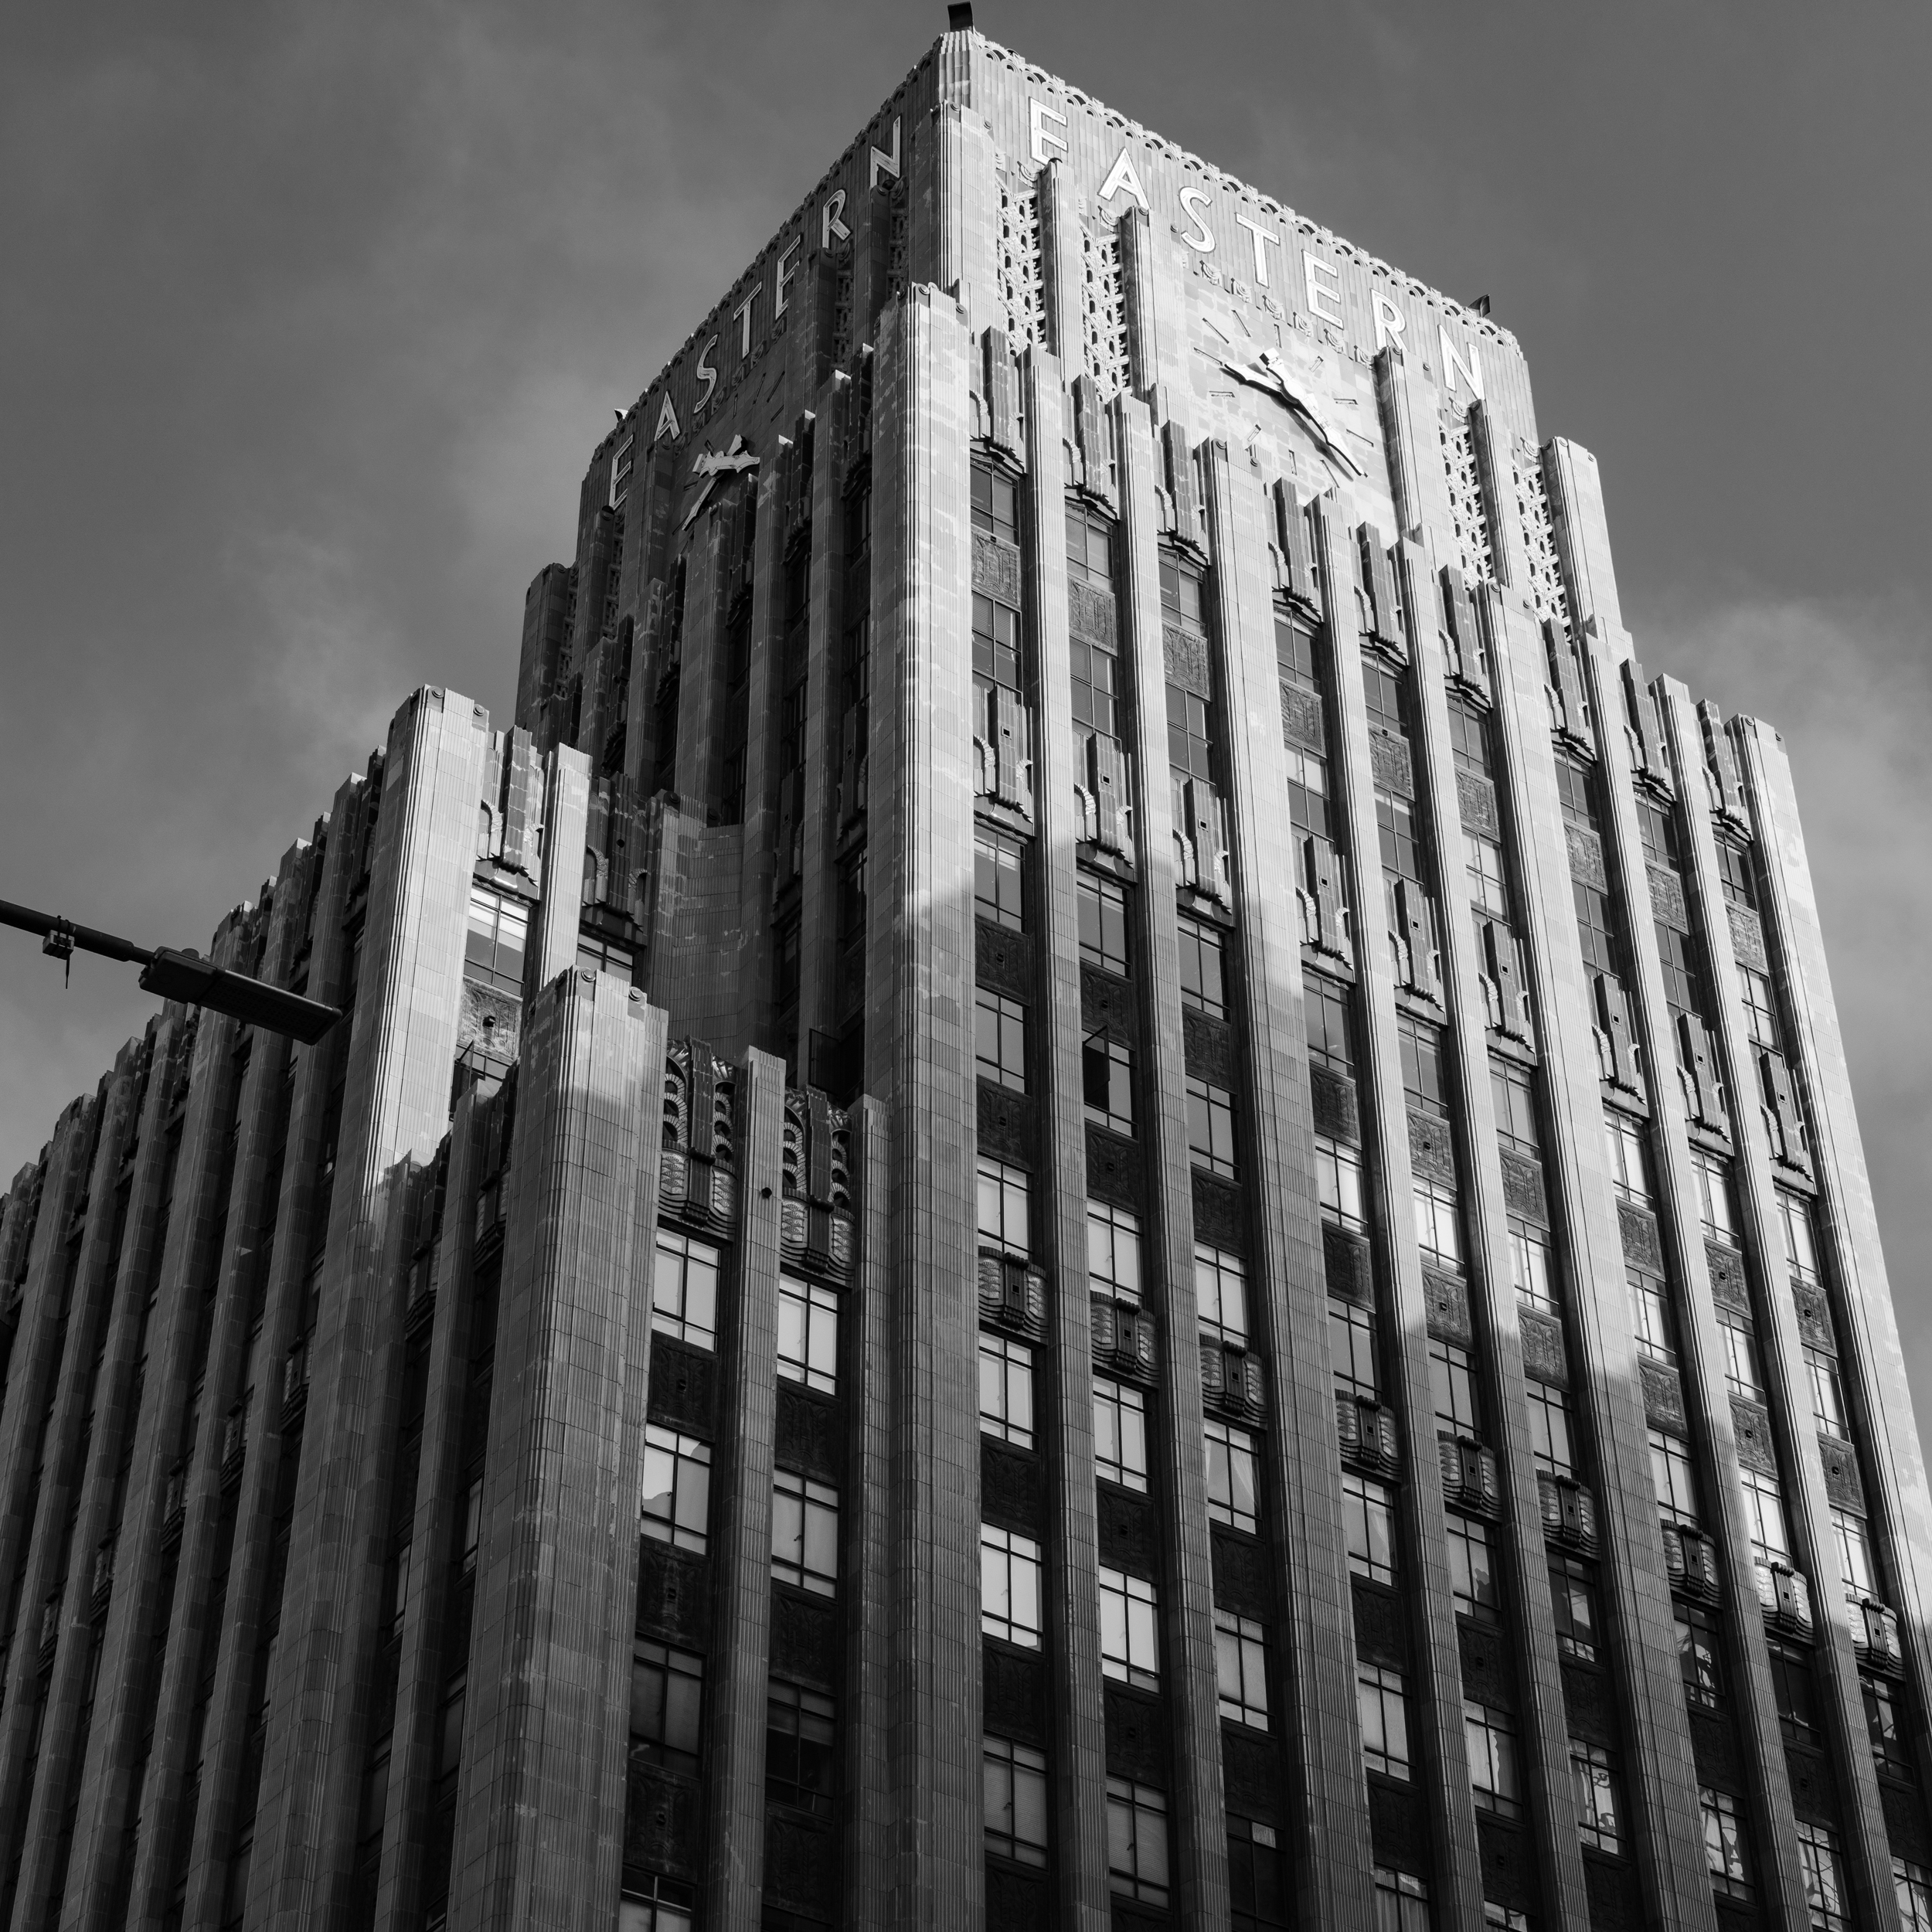 EASTERN COLUMBIA BUILDING_02.jpg